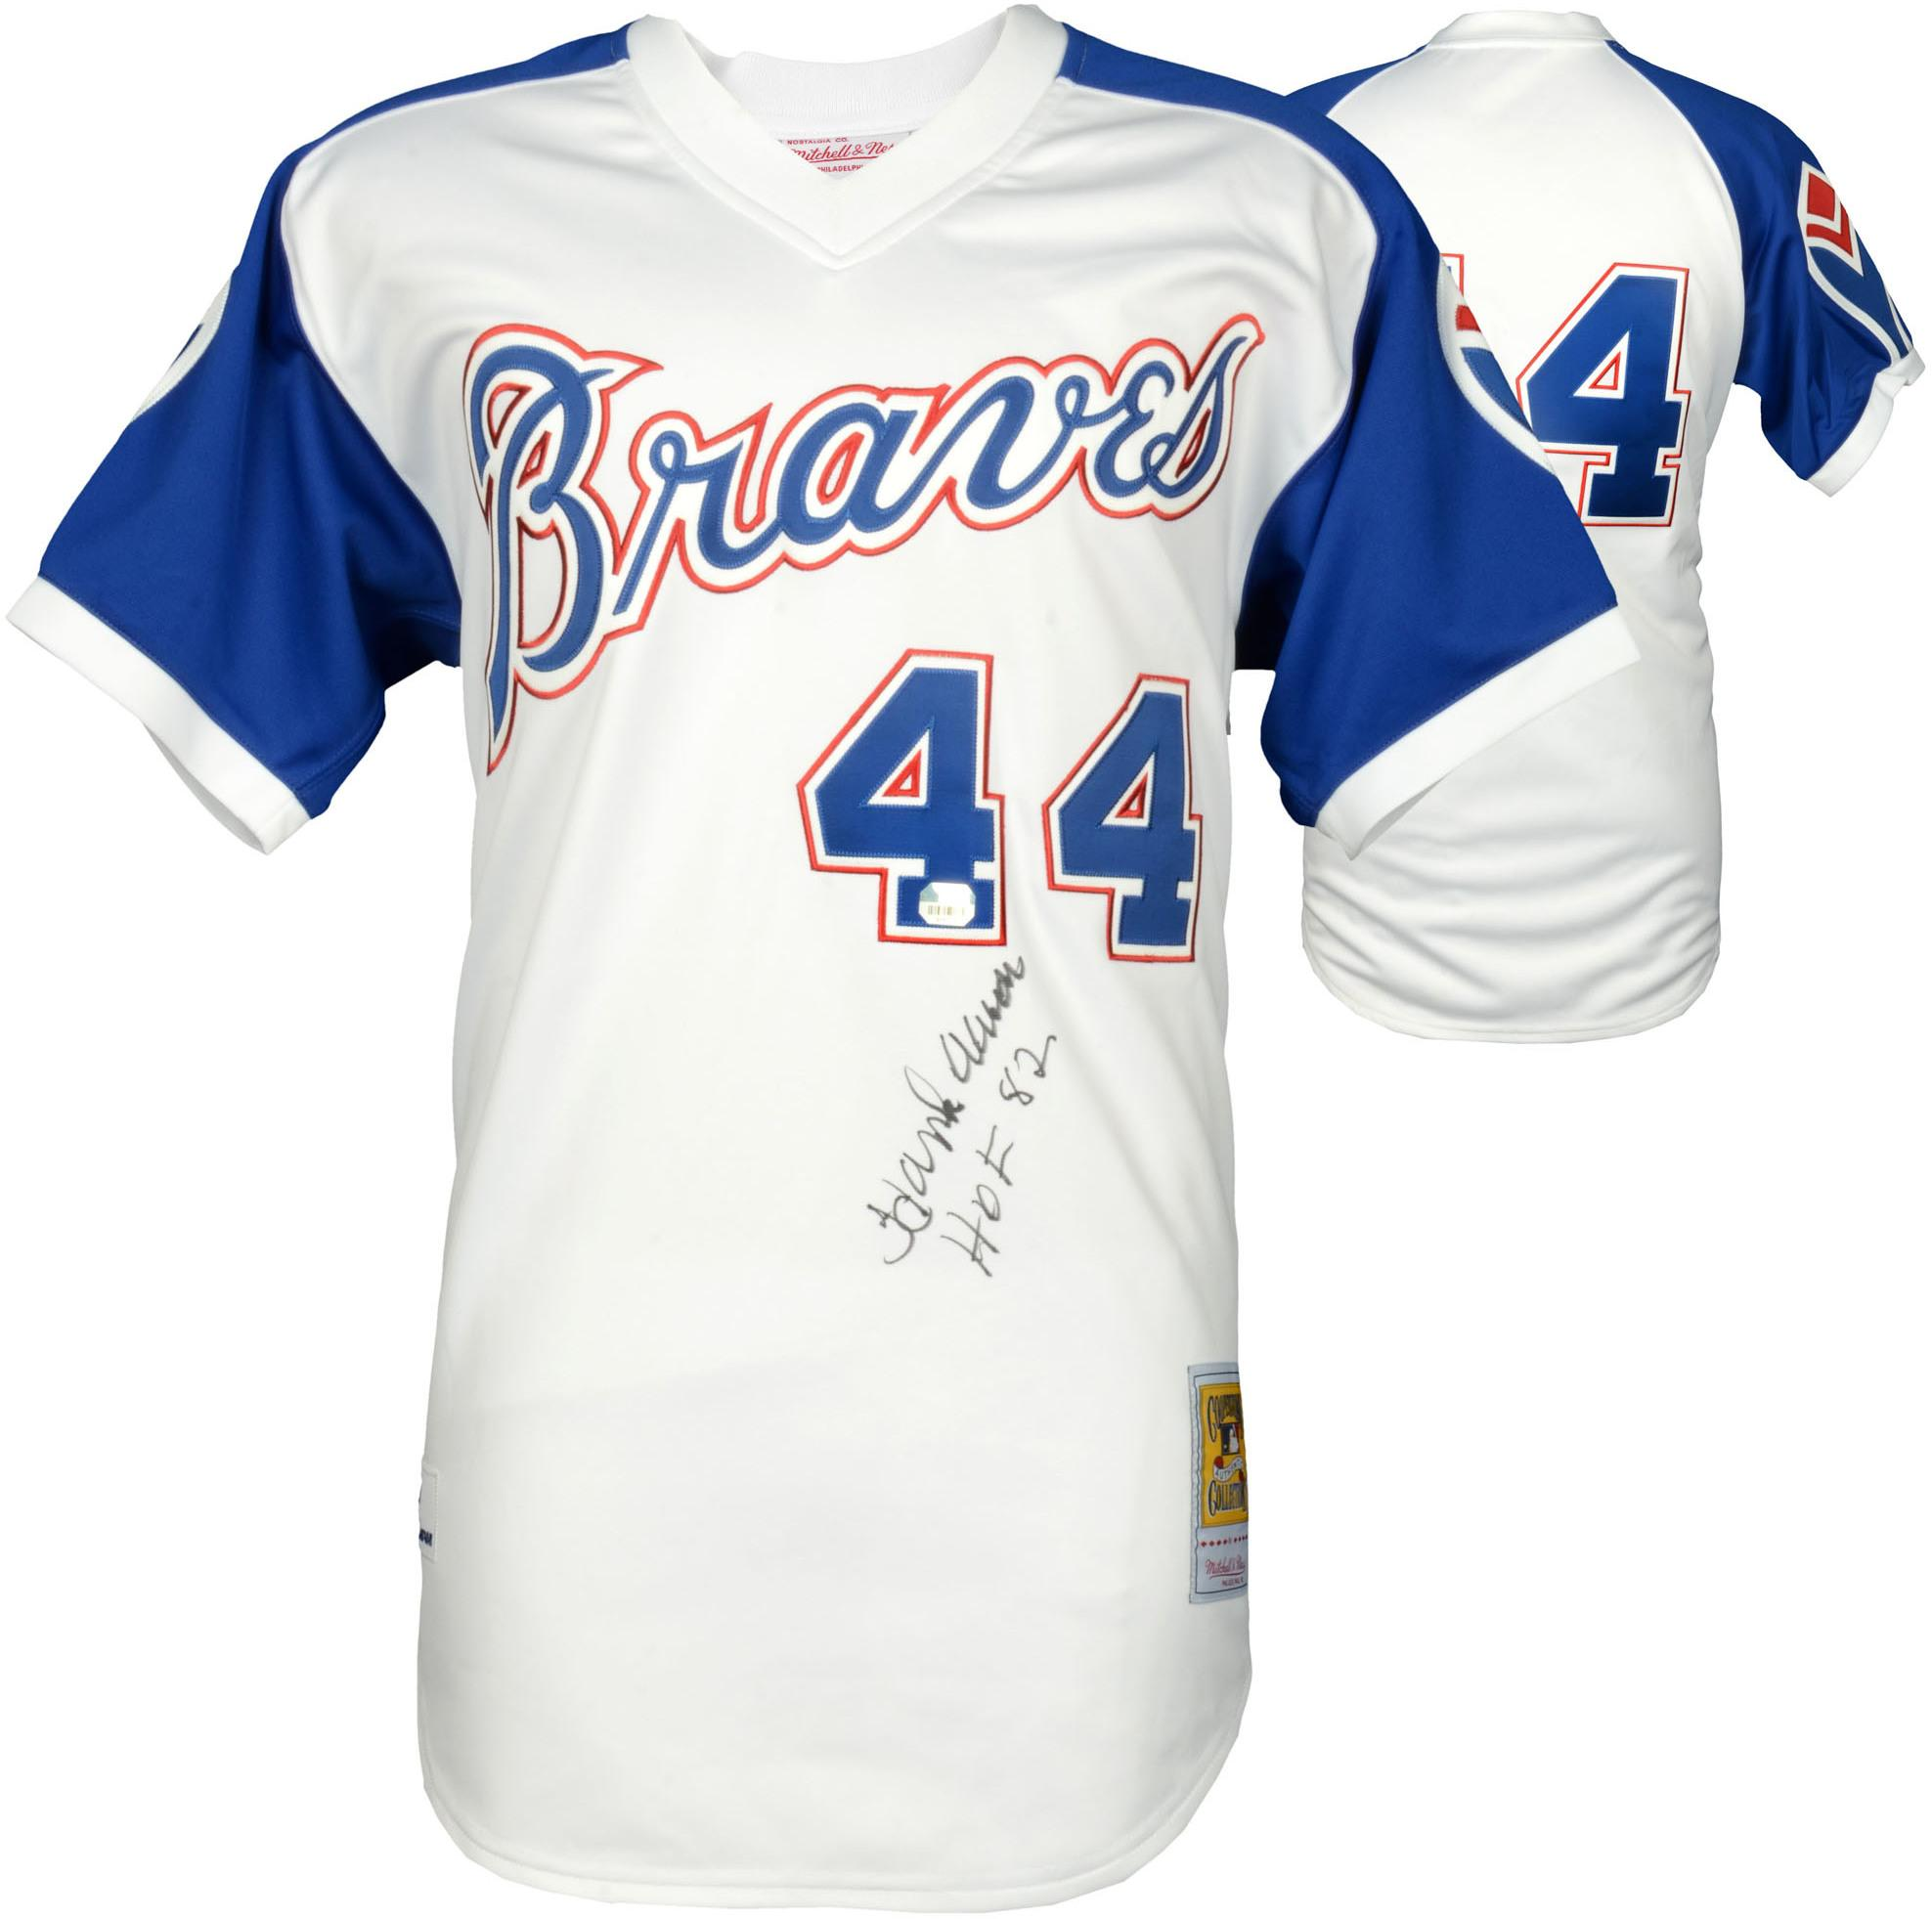 Hank Aaron Atlanta Braves Autographed Mitchell & Ness Authentic Jersey with HOF 82 Inscription - Fanatics Authentic Certified